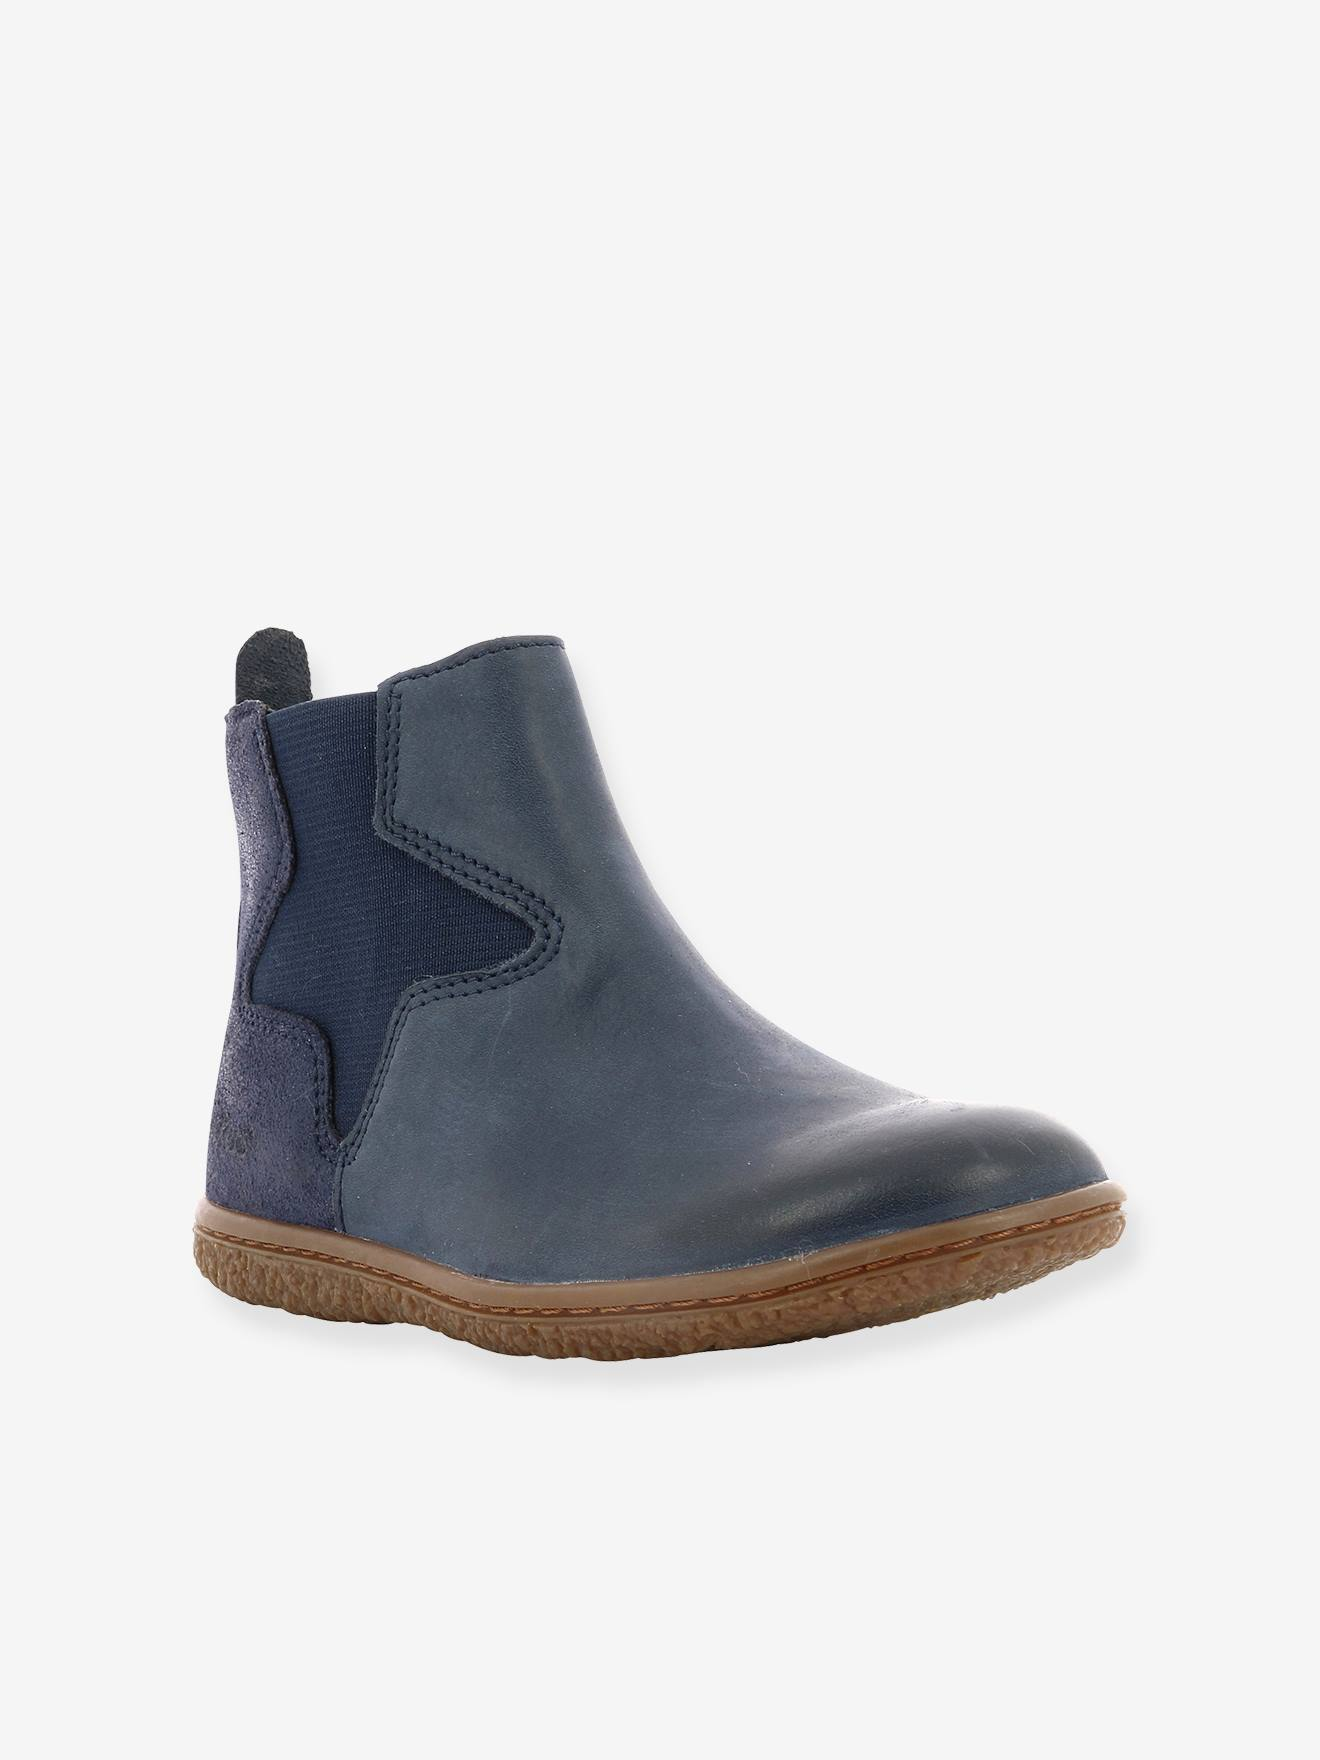 Boots fille Vermillon KICKERS® marine, Chaussures